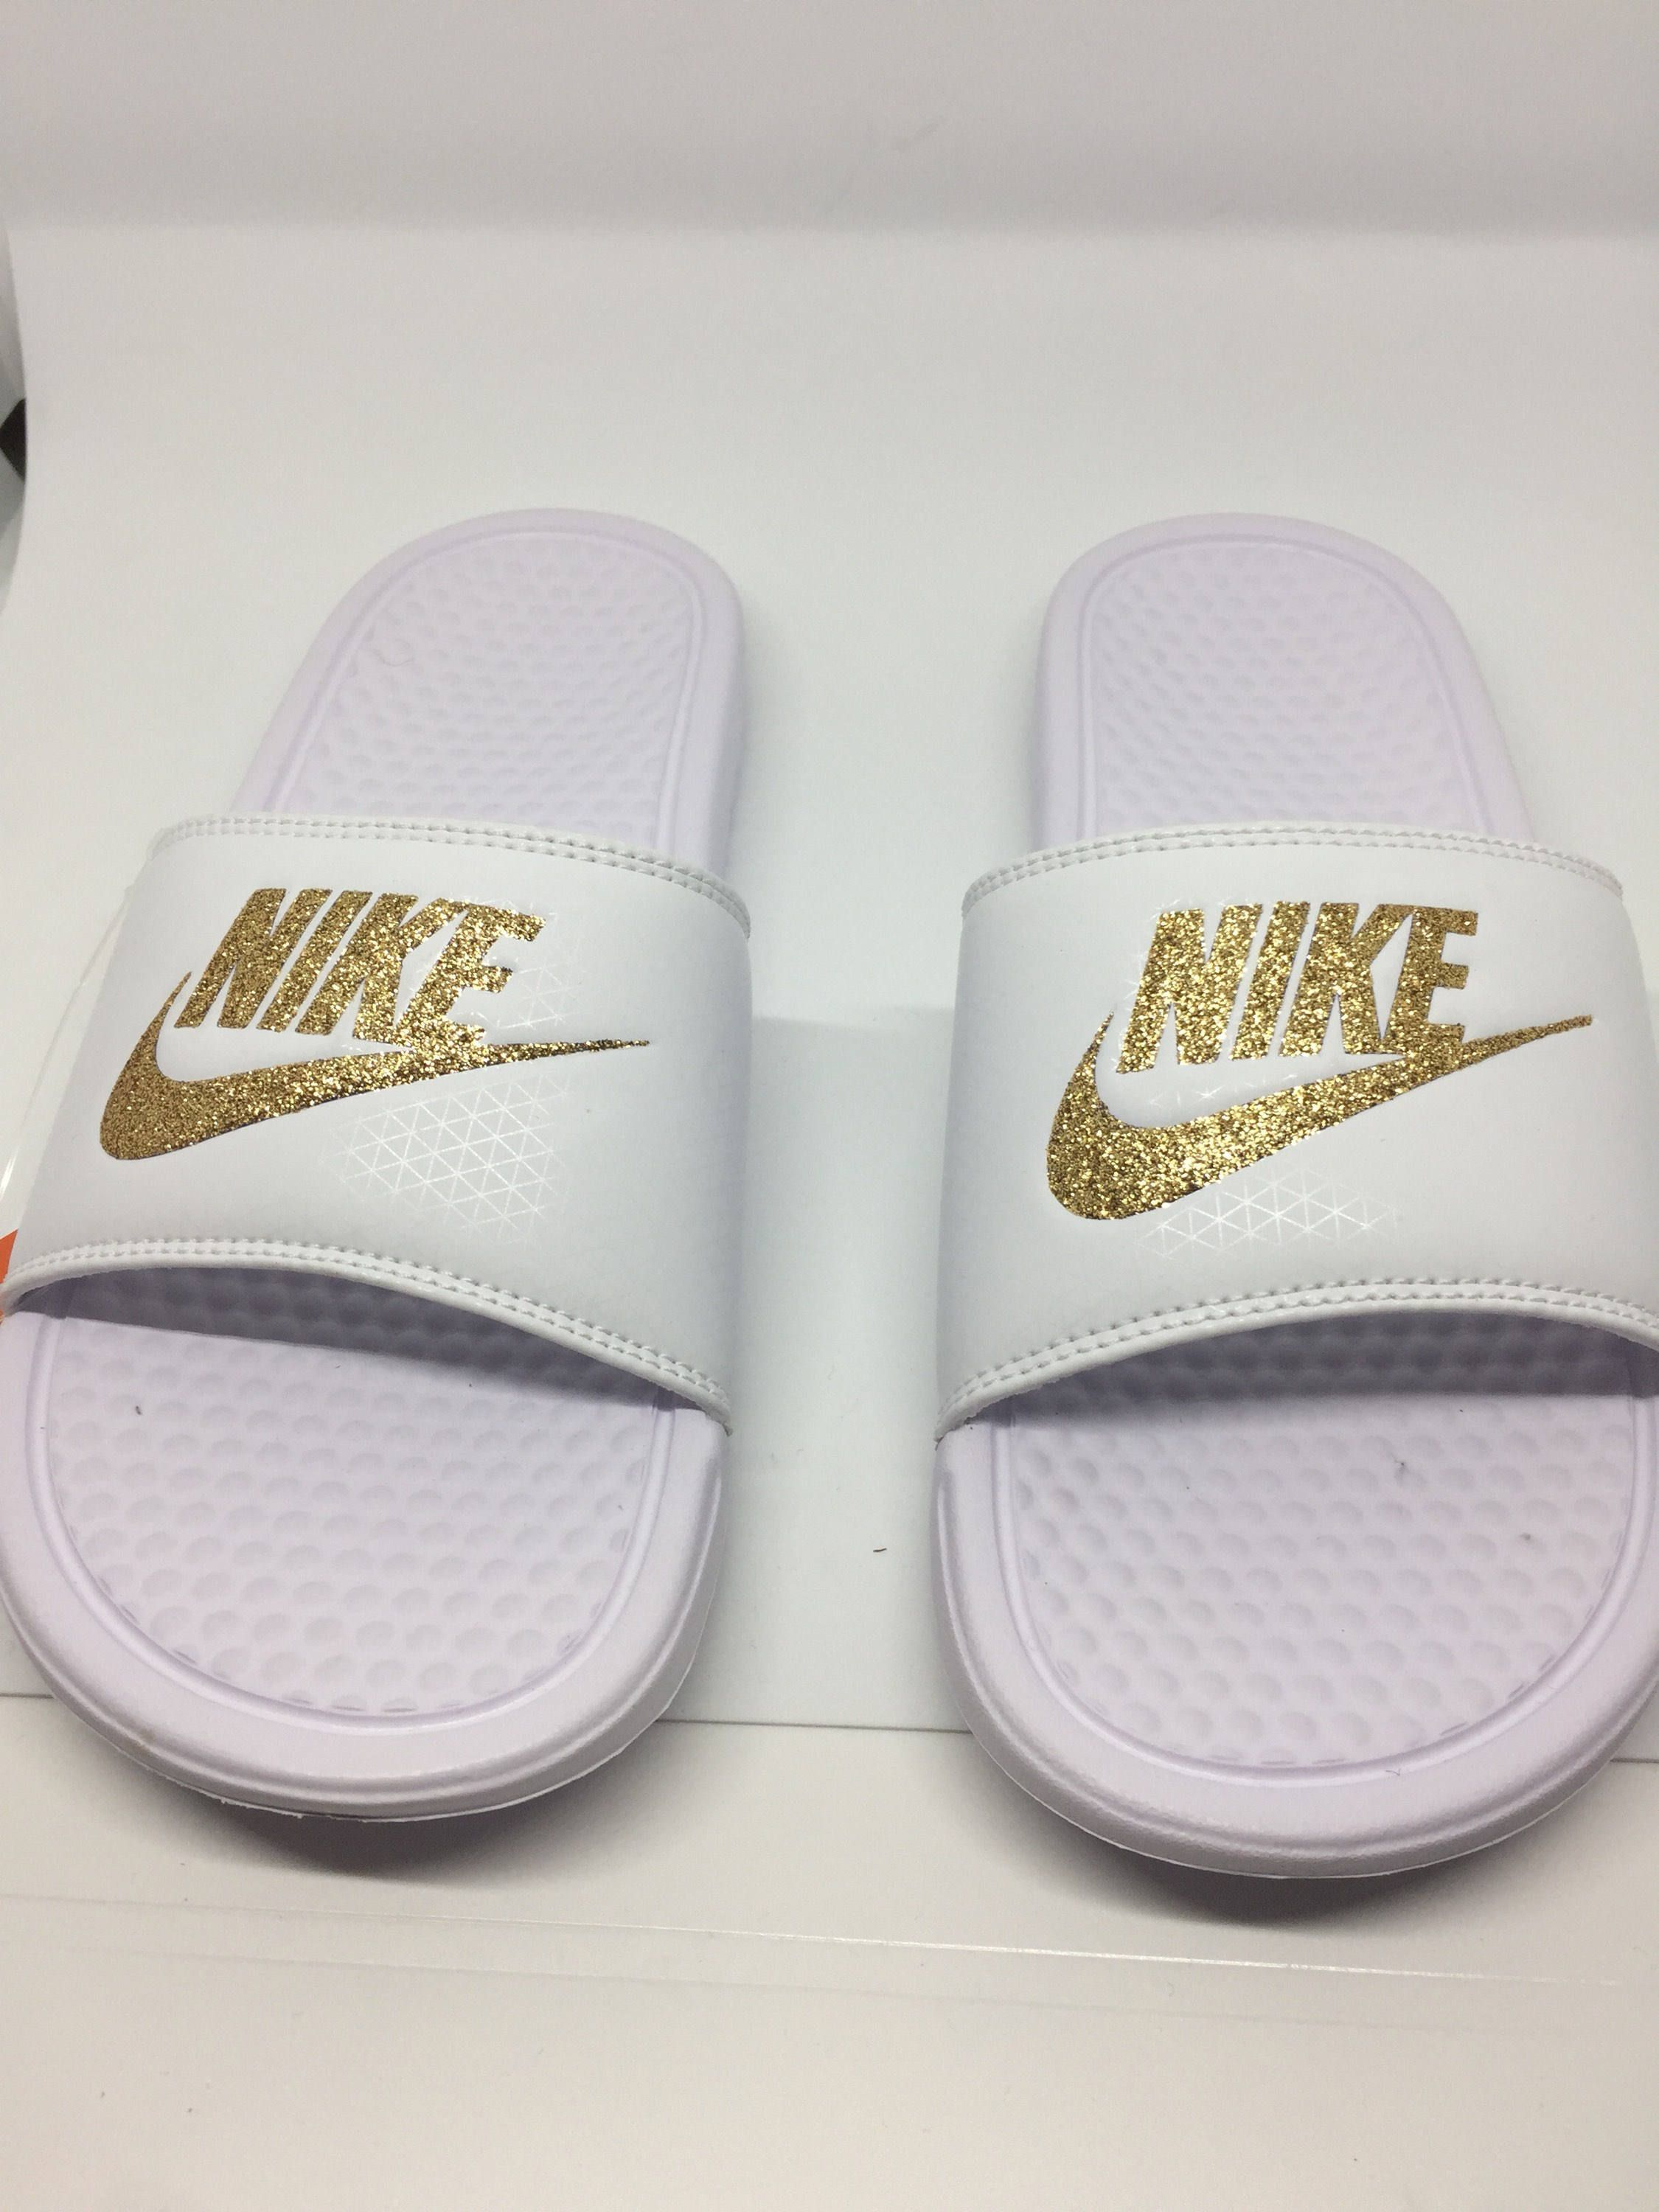 Custom White Nike Slides Sandals with Gold Glitter Sparkling Logo e8e447f32